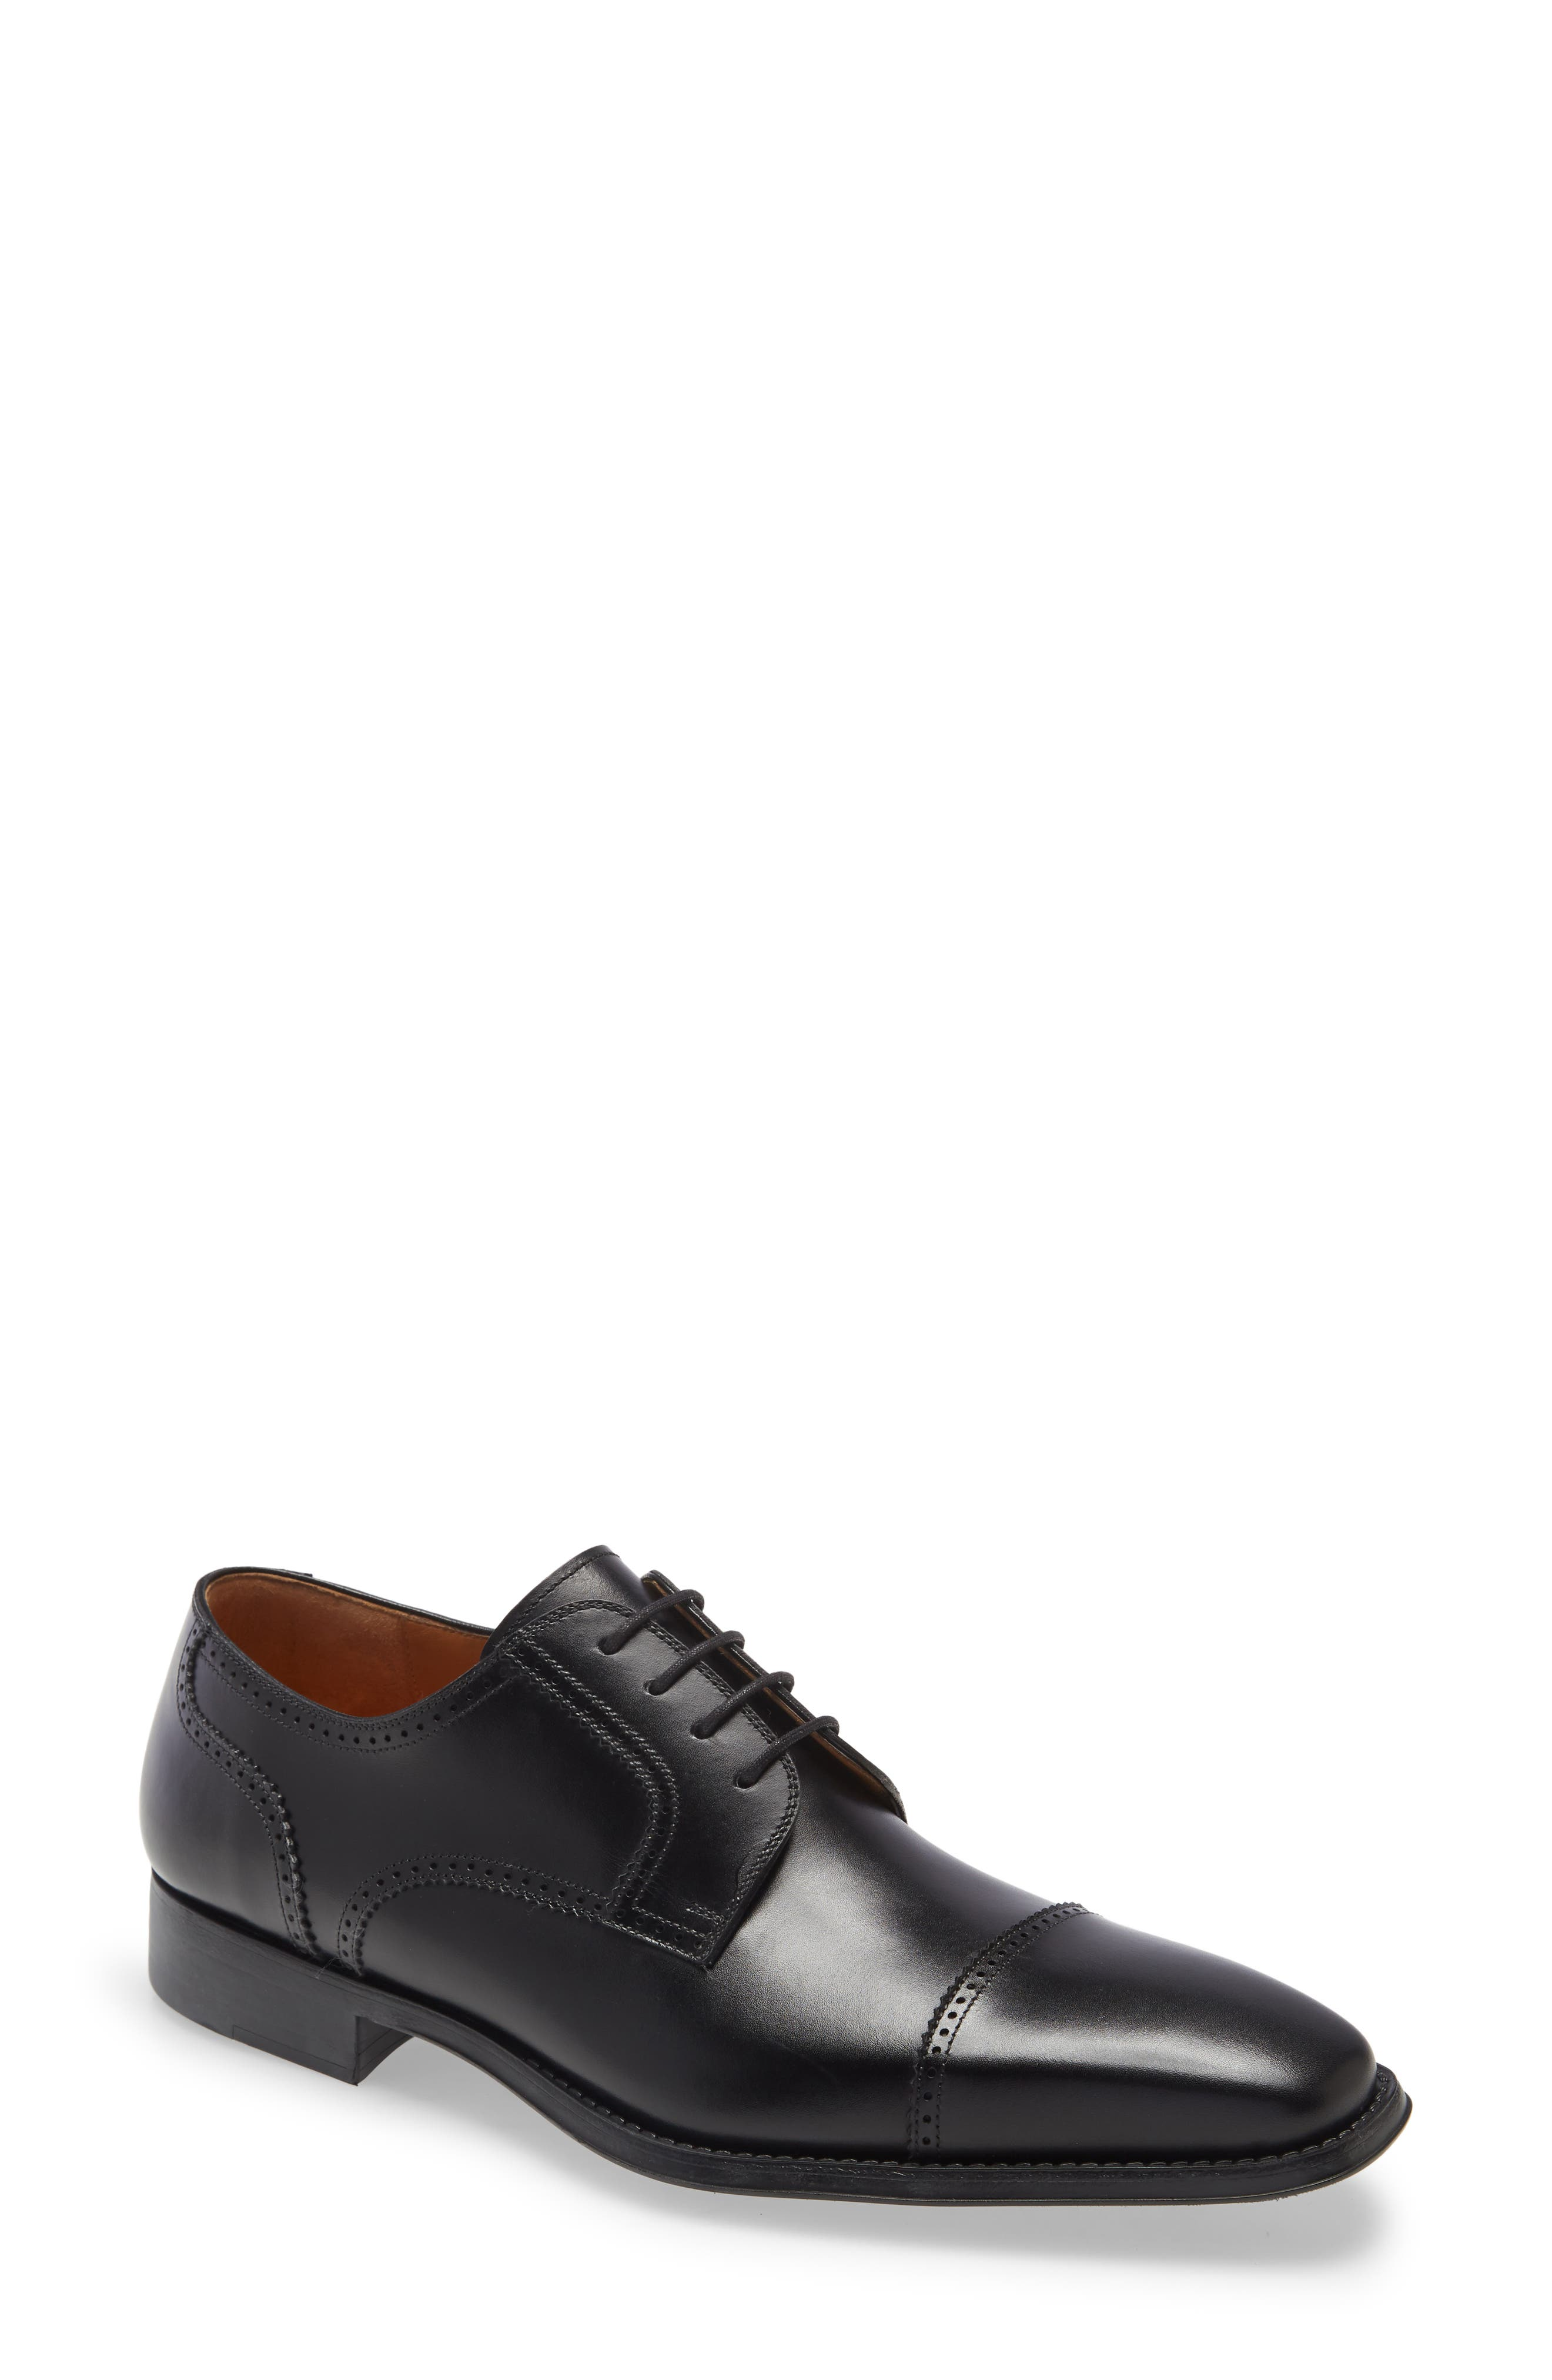 Handsome broguing traces the contours of a polished leather derby that pairs a breathable leather interior with a squared cap toe and angular Euro footprint. Style Name: Magnanni Carl Cap Toe Derby (Men). Style Number: 5994249. Available in stores.